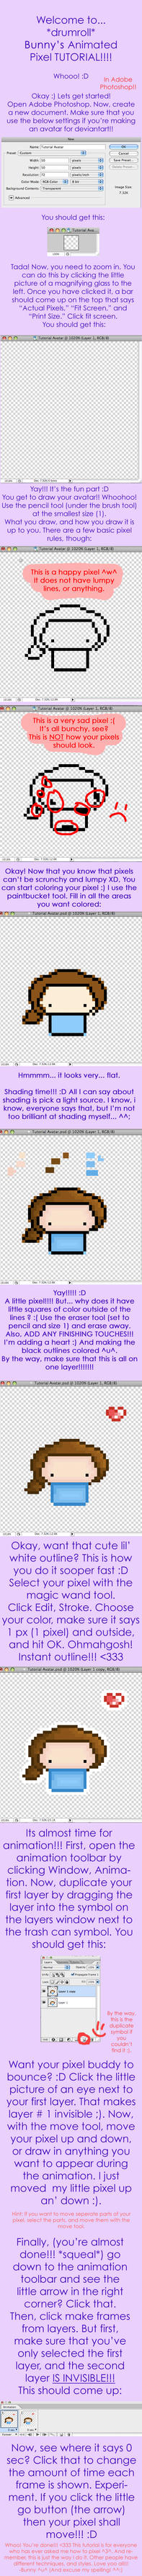 Pixel Avatar Tutorial by indigobunny